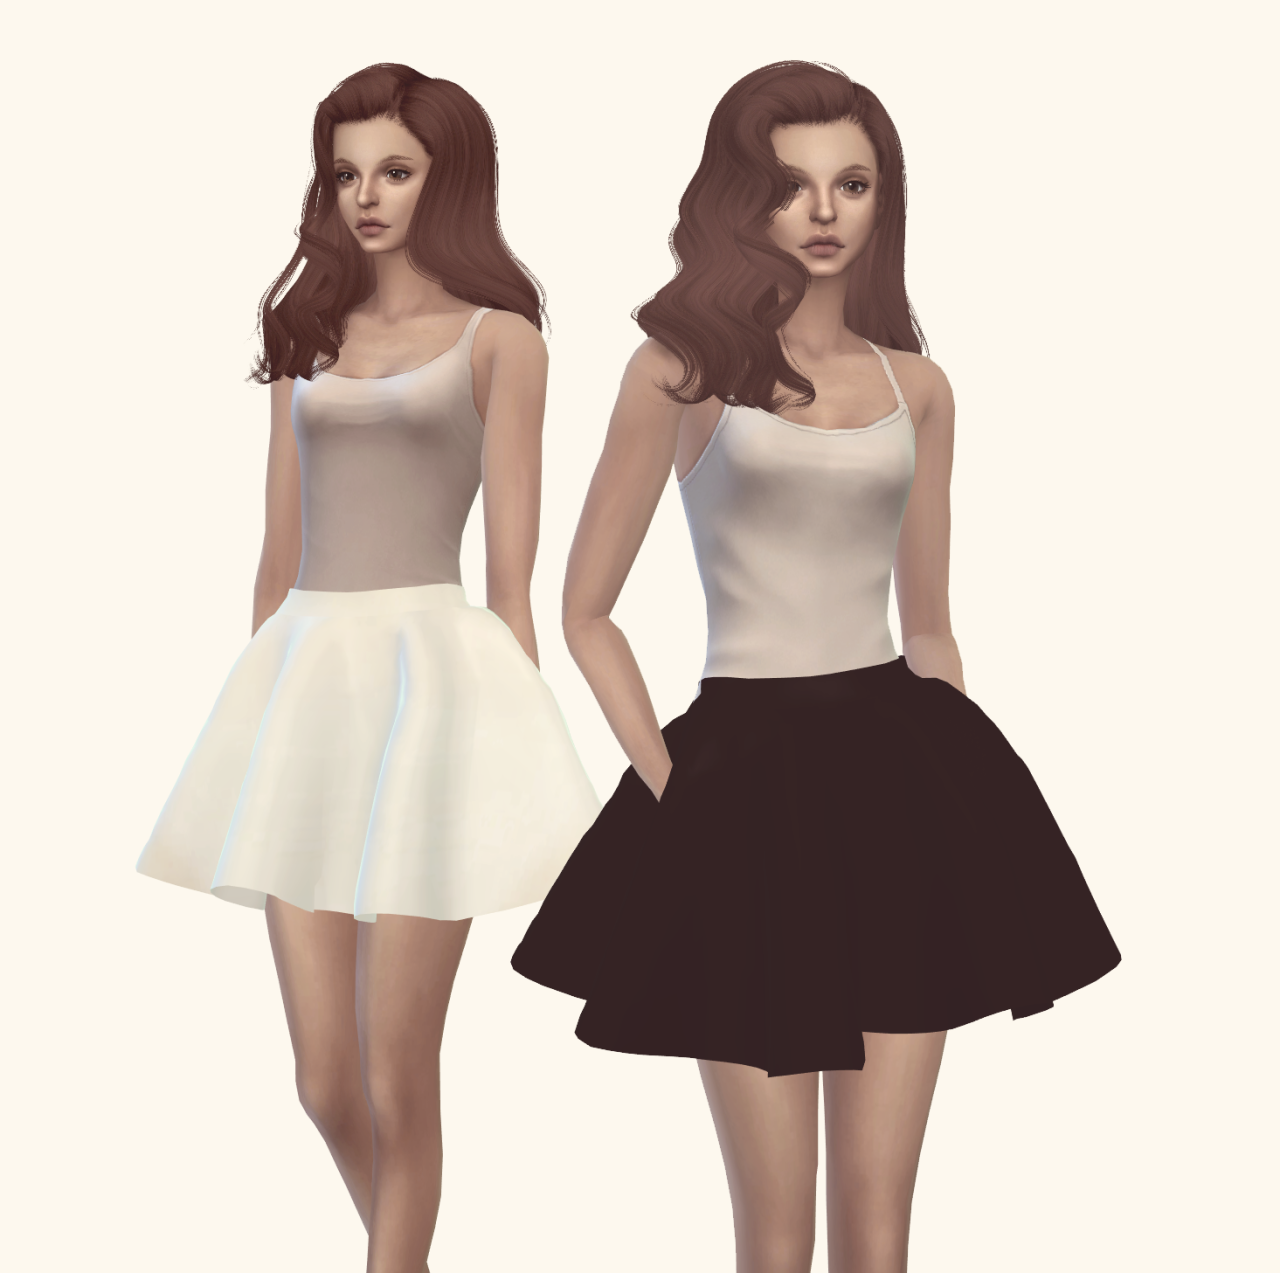 My Sims 4 Blog: Dress Recolors by VintageySims